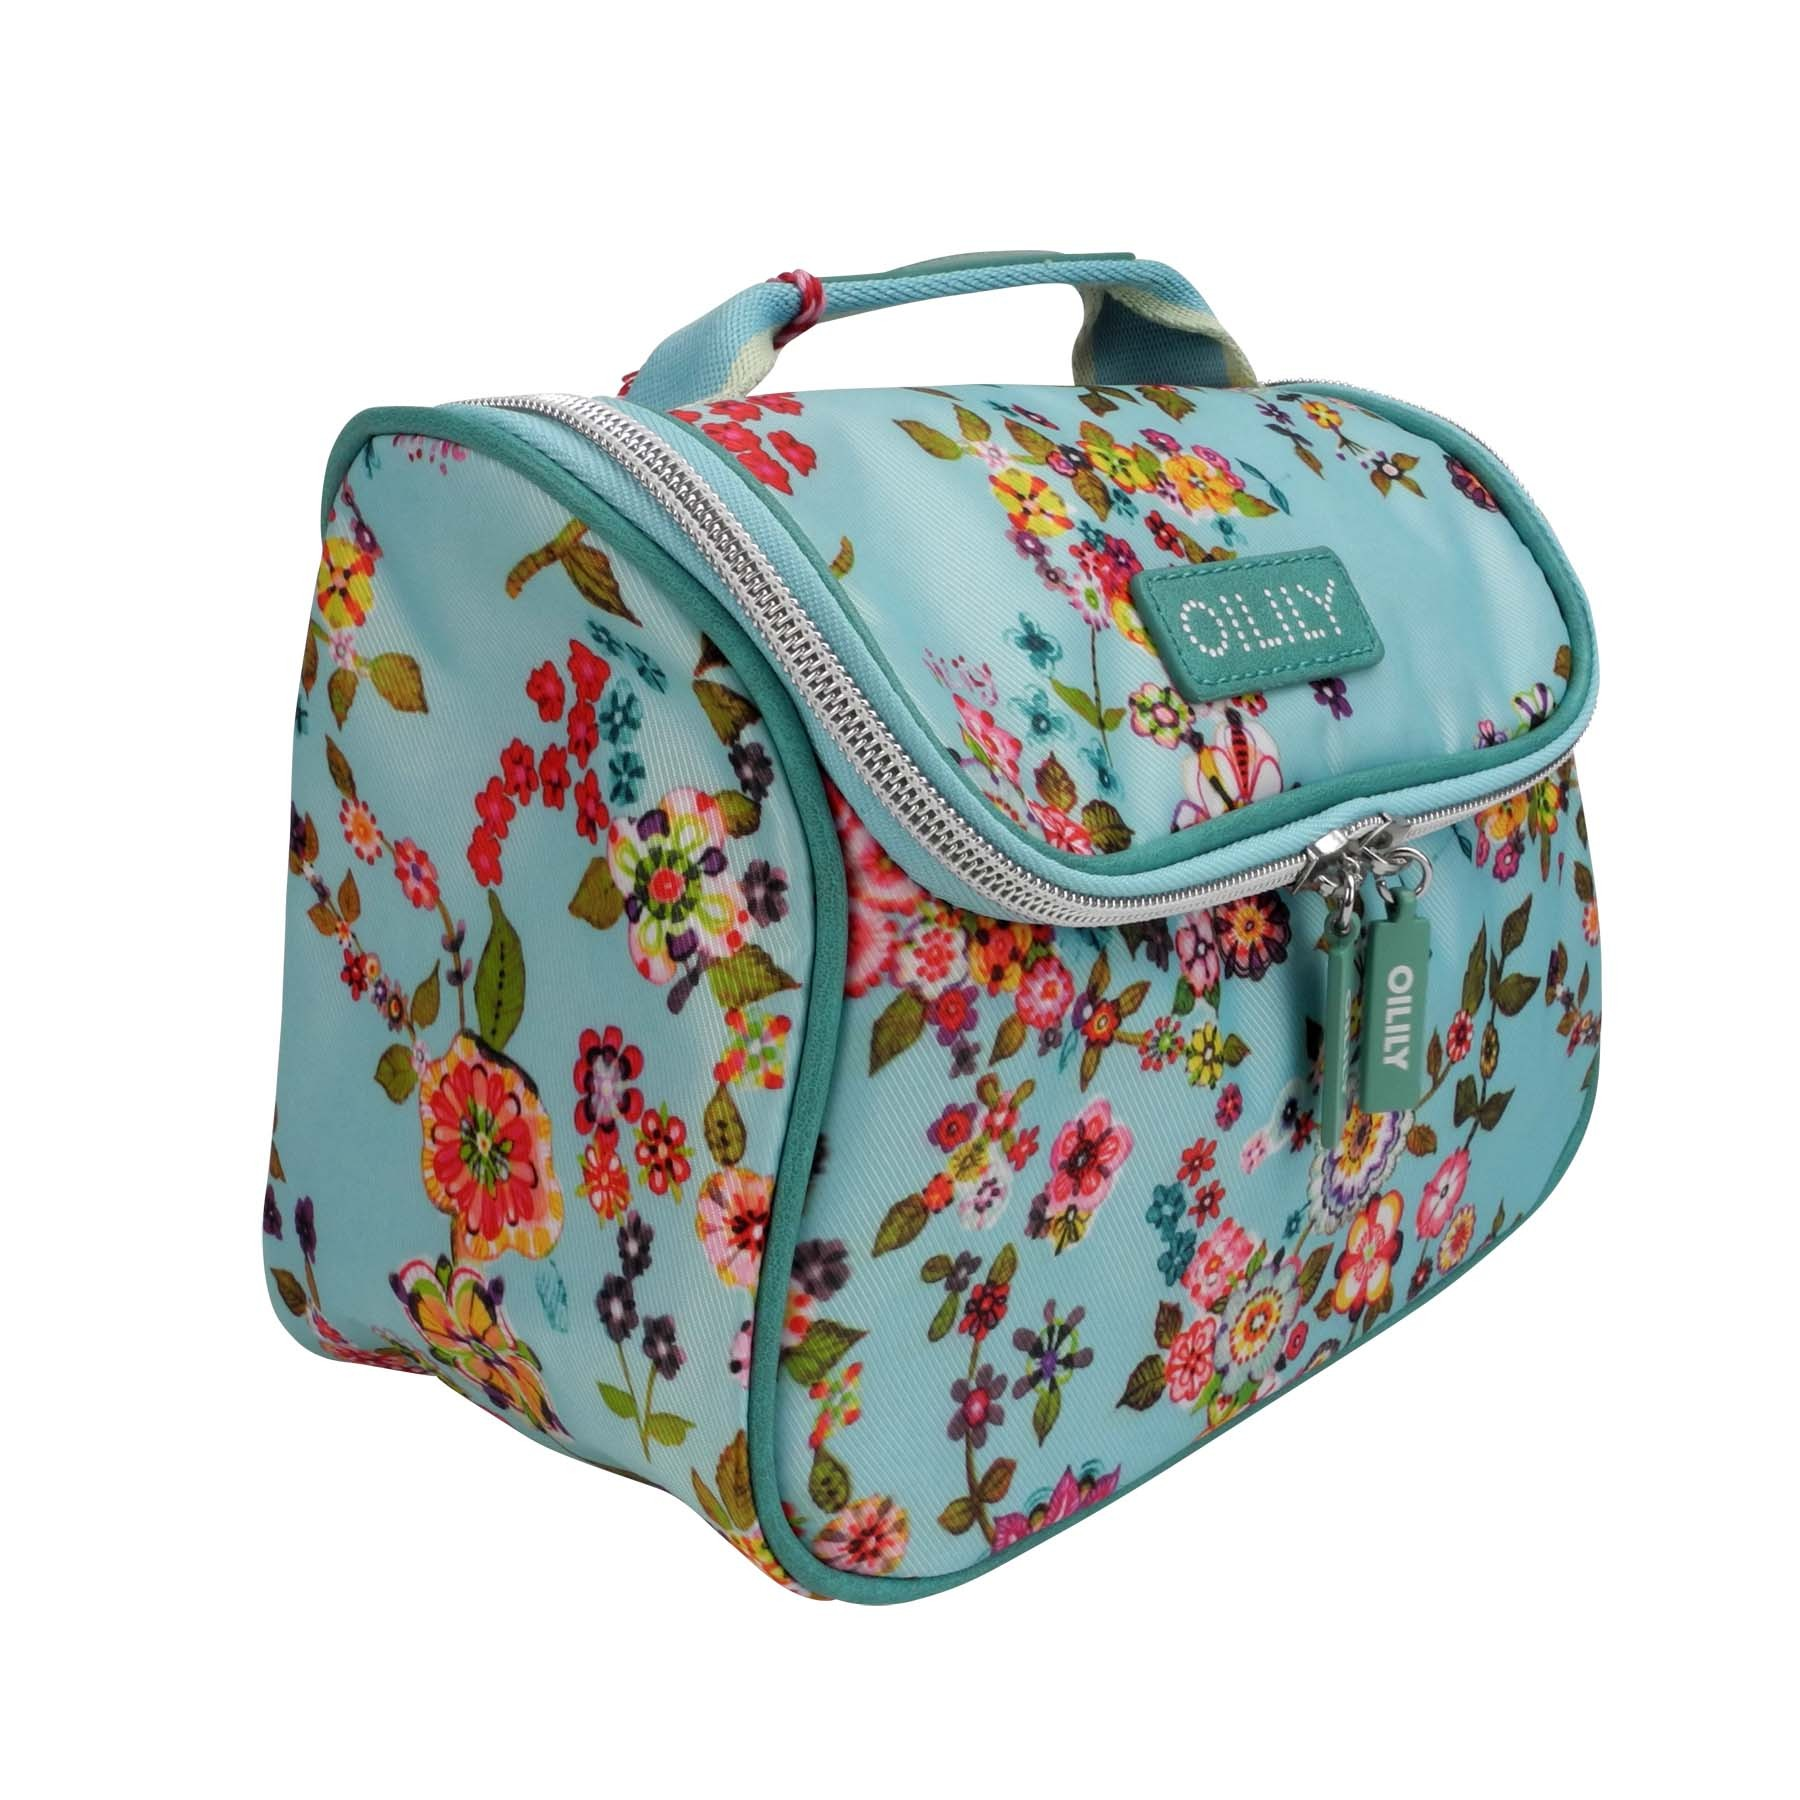 oilily mirabelle kosmetiktasche m cosmetic case apple ebay. Black Bedroom Furniture Sets. Home Design Ideas